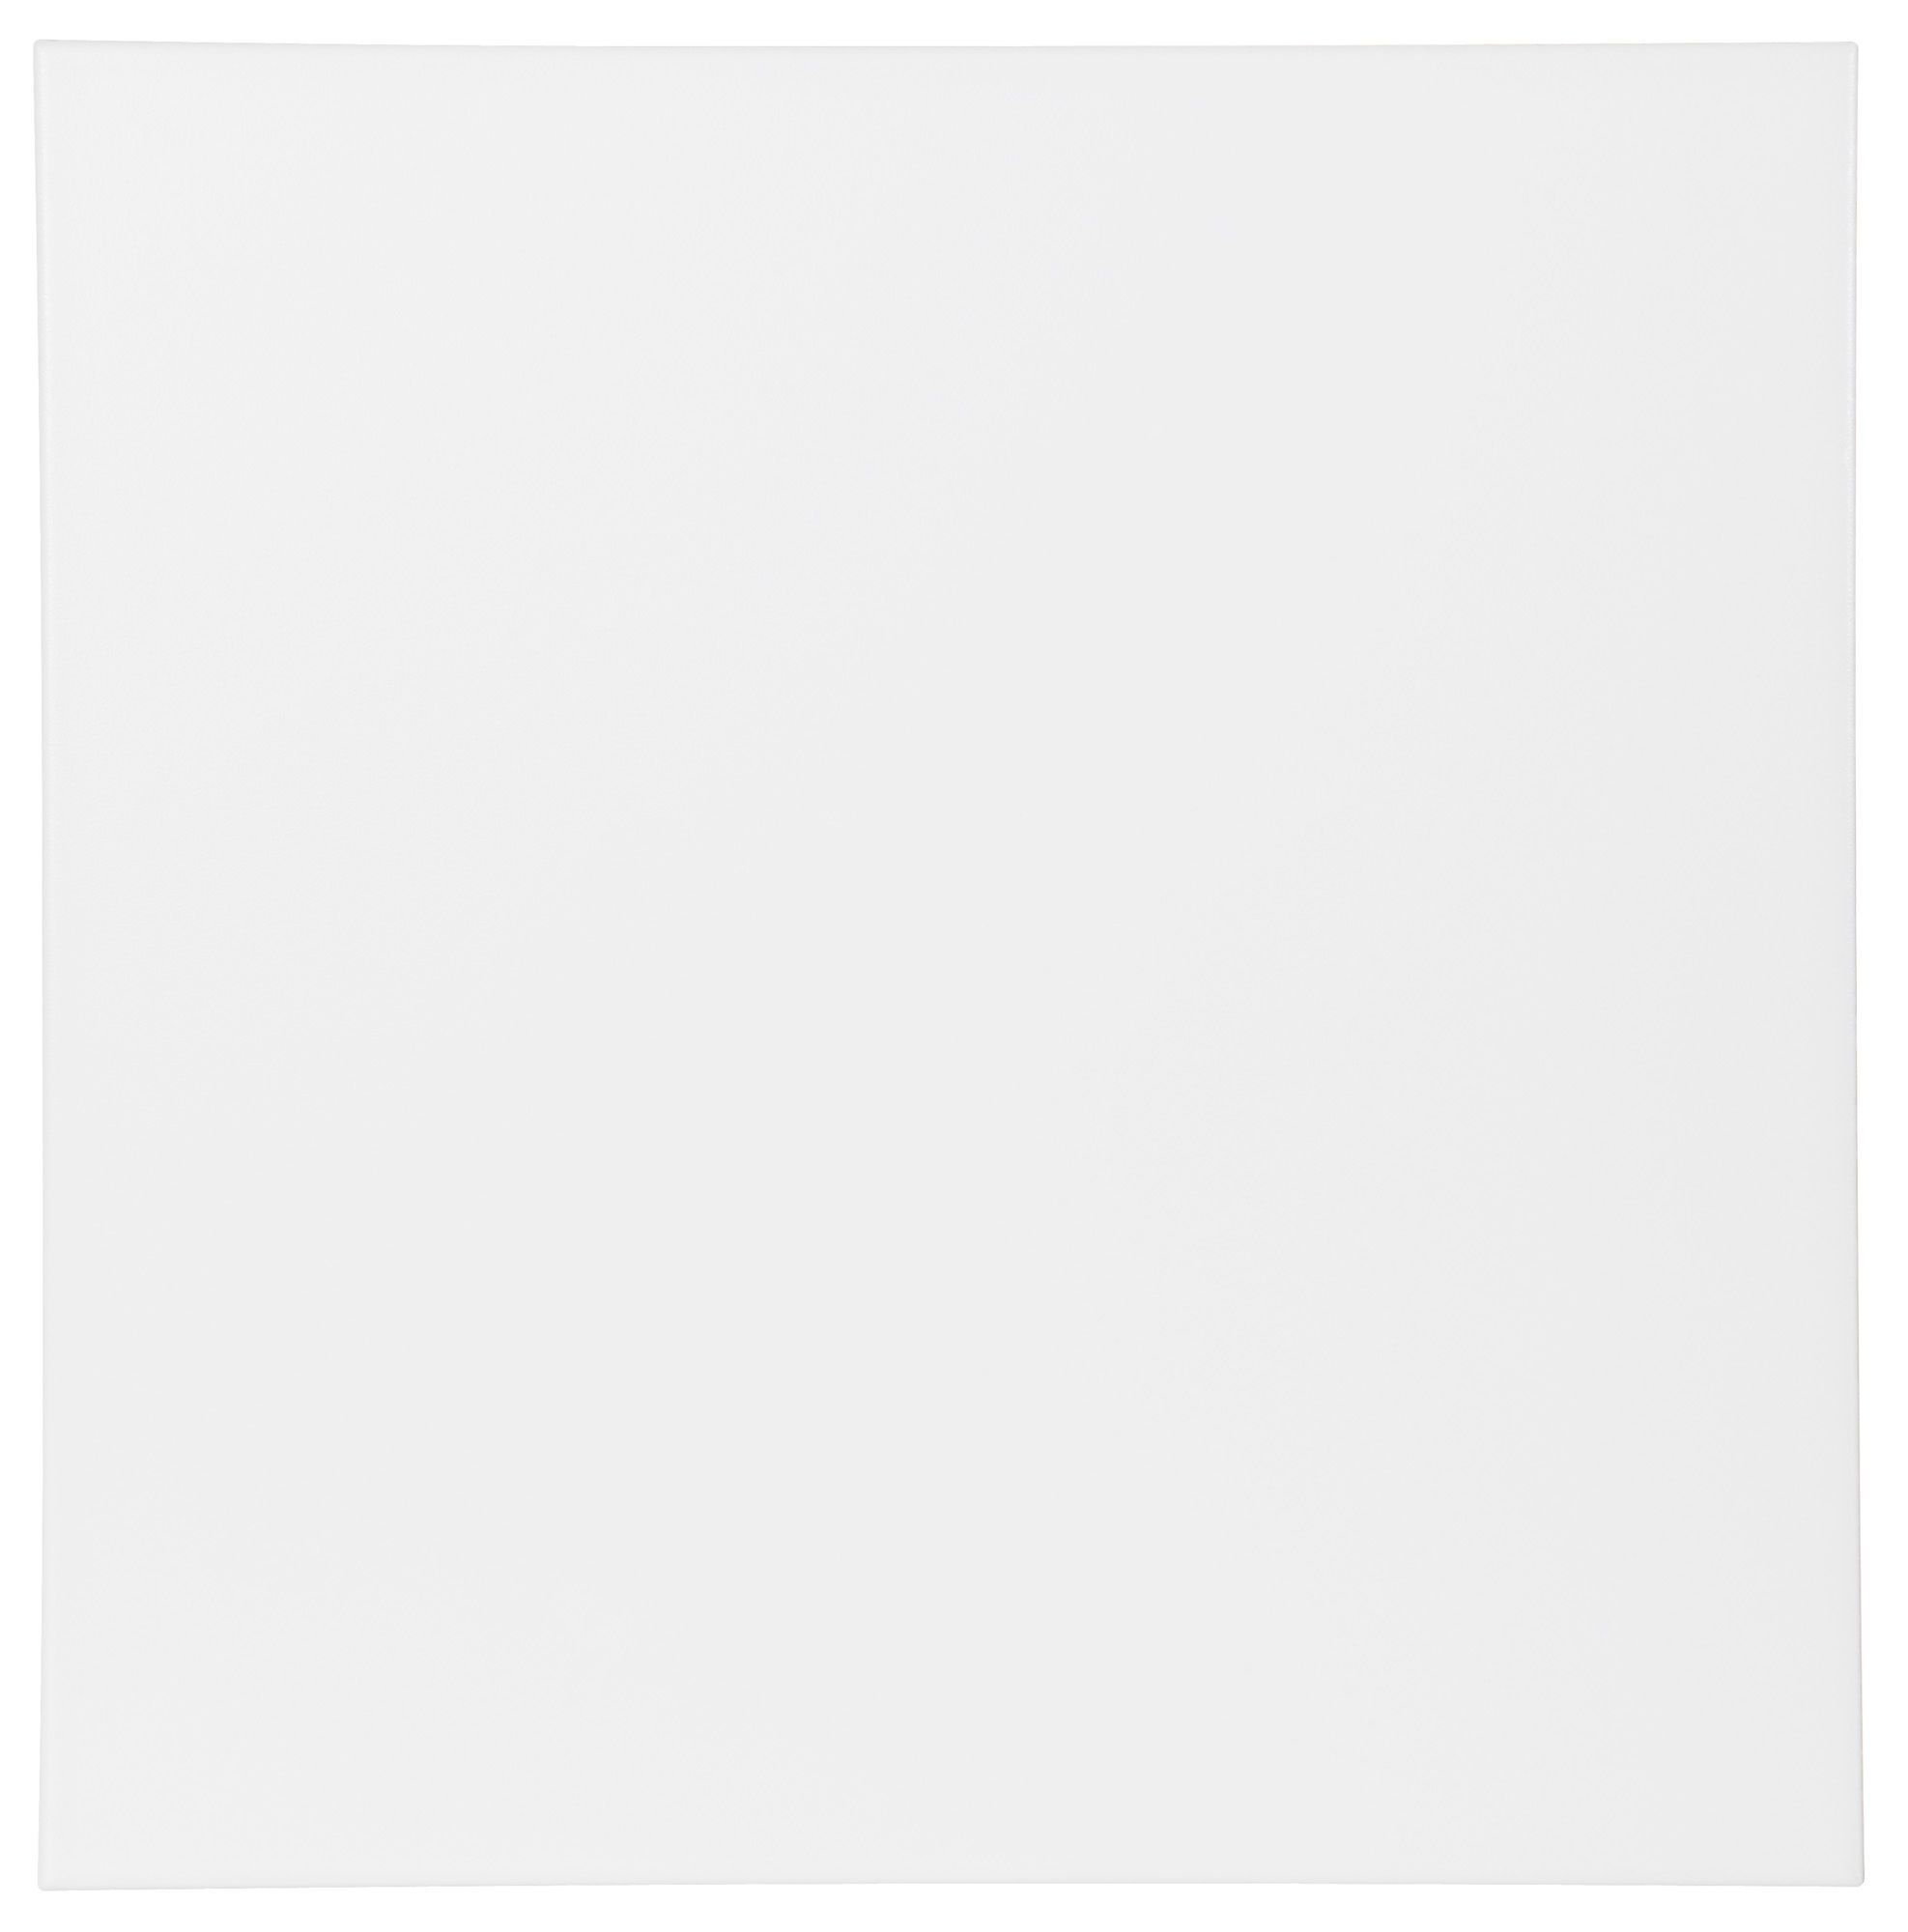 Umbria white porcelain floor tile pack of 9 l333mm w333mm umbria white porcelain floor tile pack of 9 l333mm w333mm dailygadgetfo Gallery